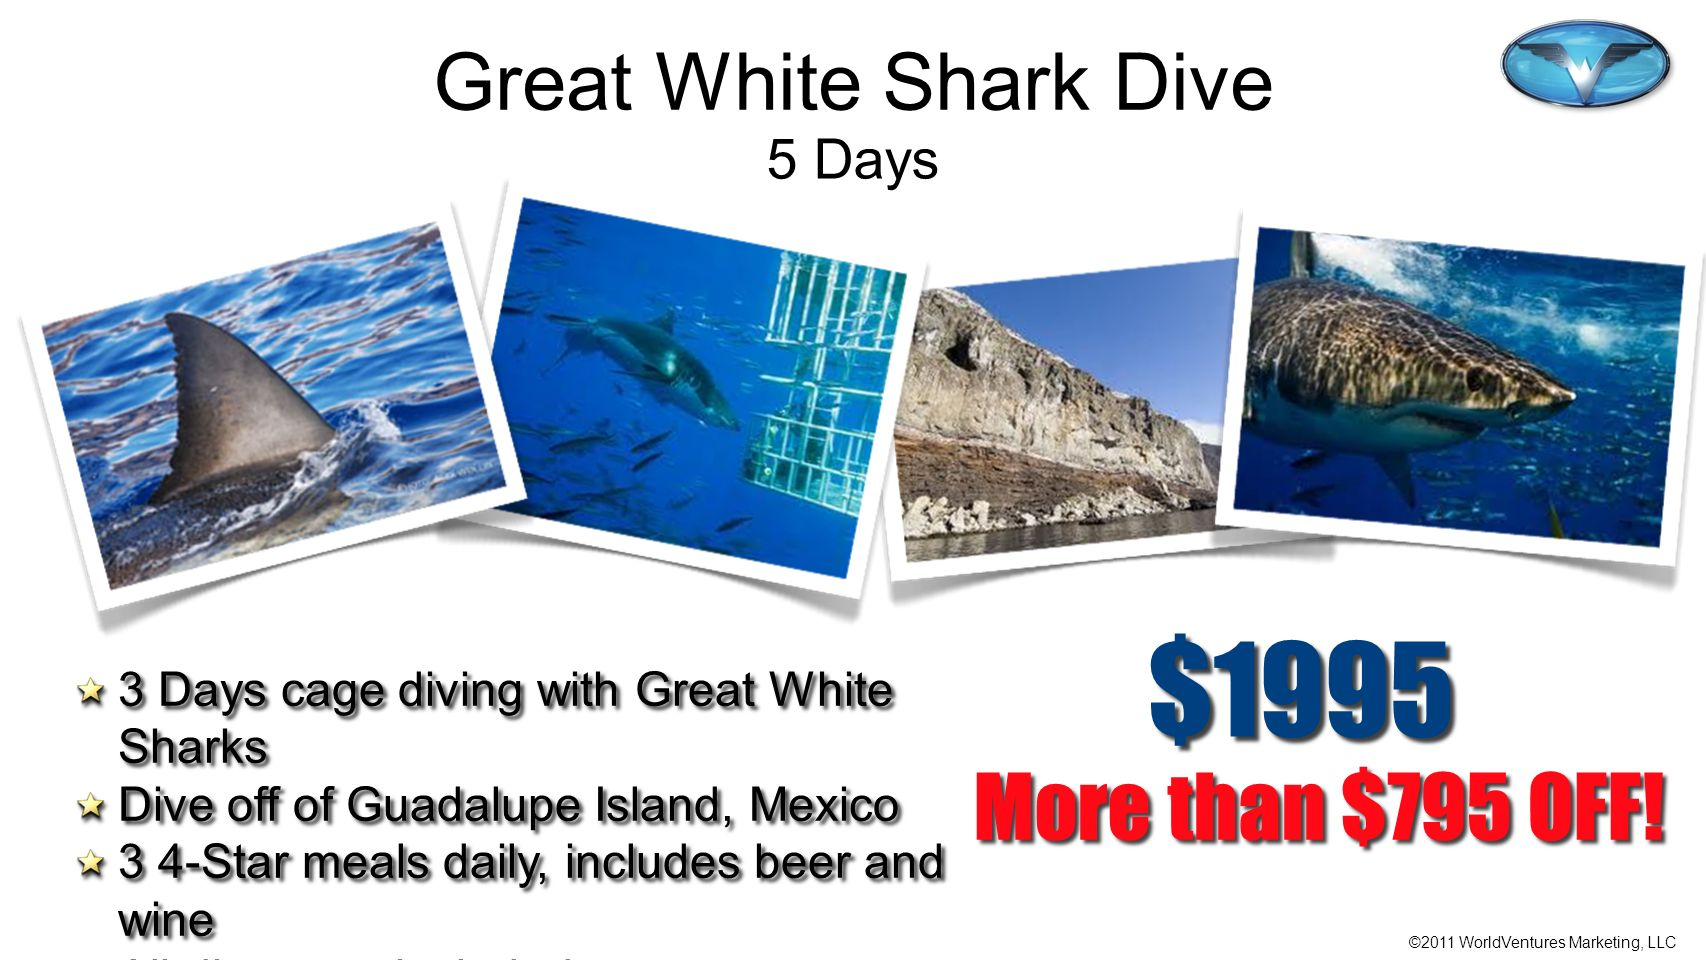 $1995 More than $795 OFF! Great White Shark Dive 5 Days